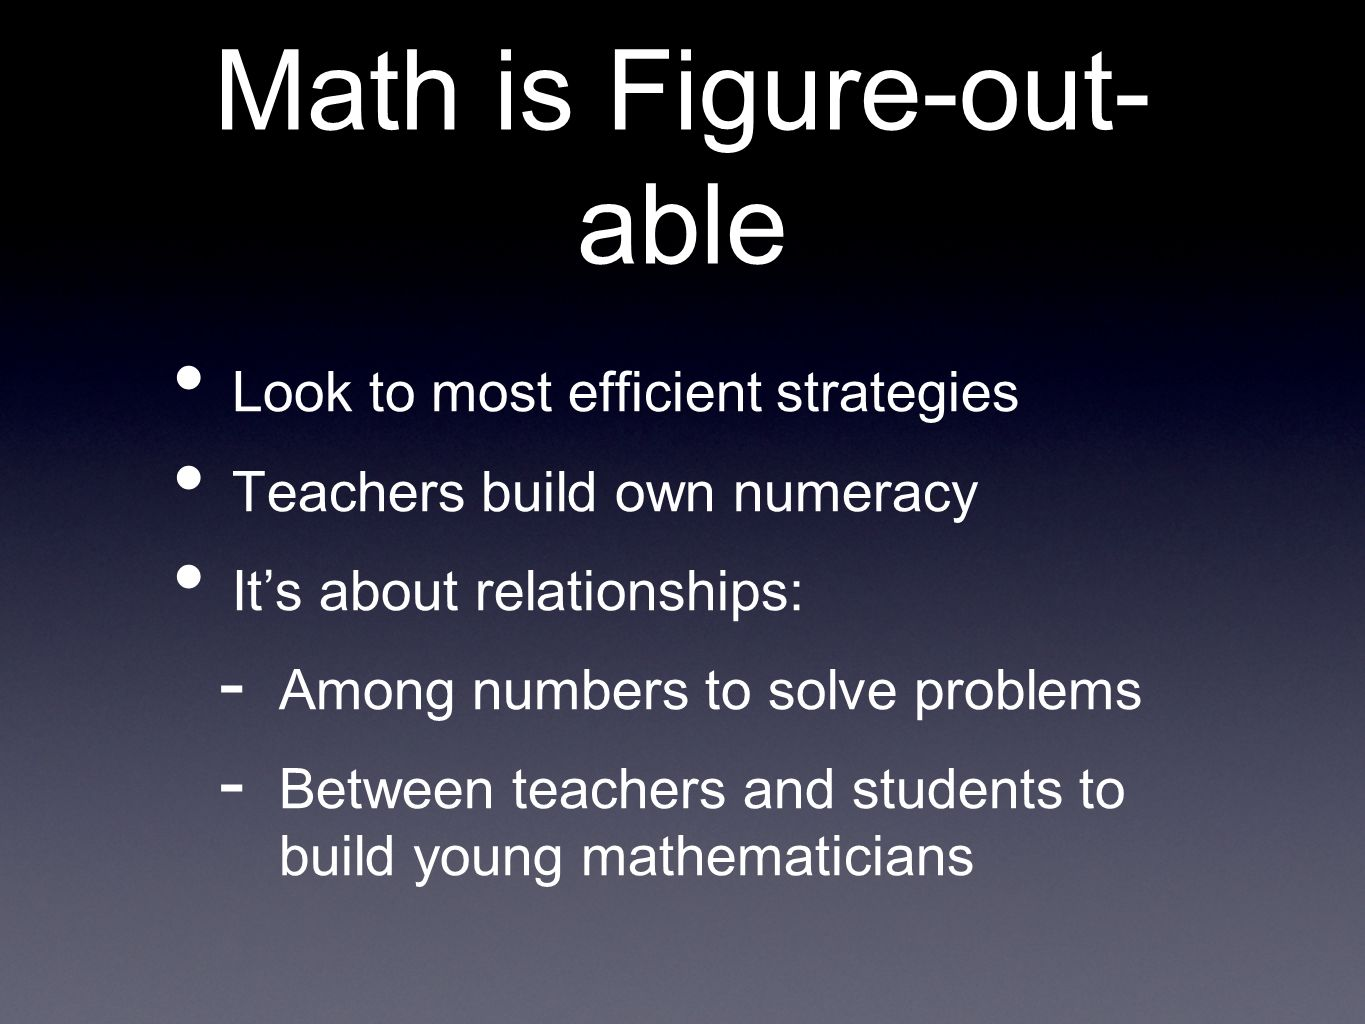 Math is Figure-out- able Look to most efficient strategies Teachers build own numeracy Its about relationships: - Among numbers to solve problems - Between teachers and students to build young mathematicians